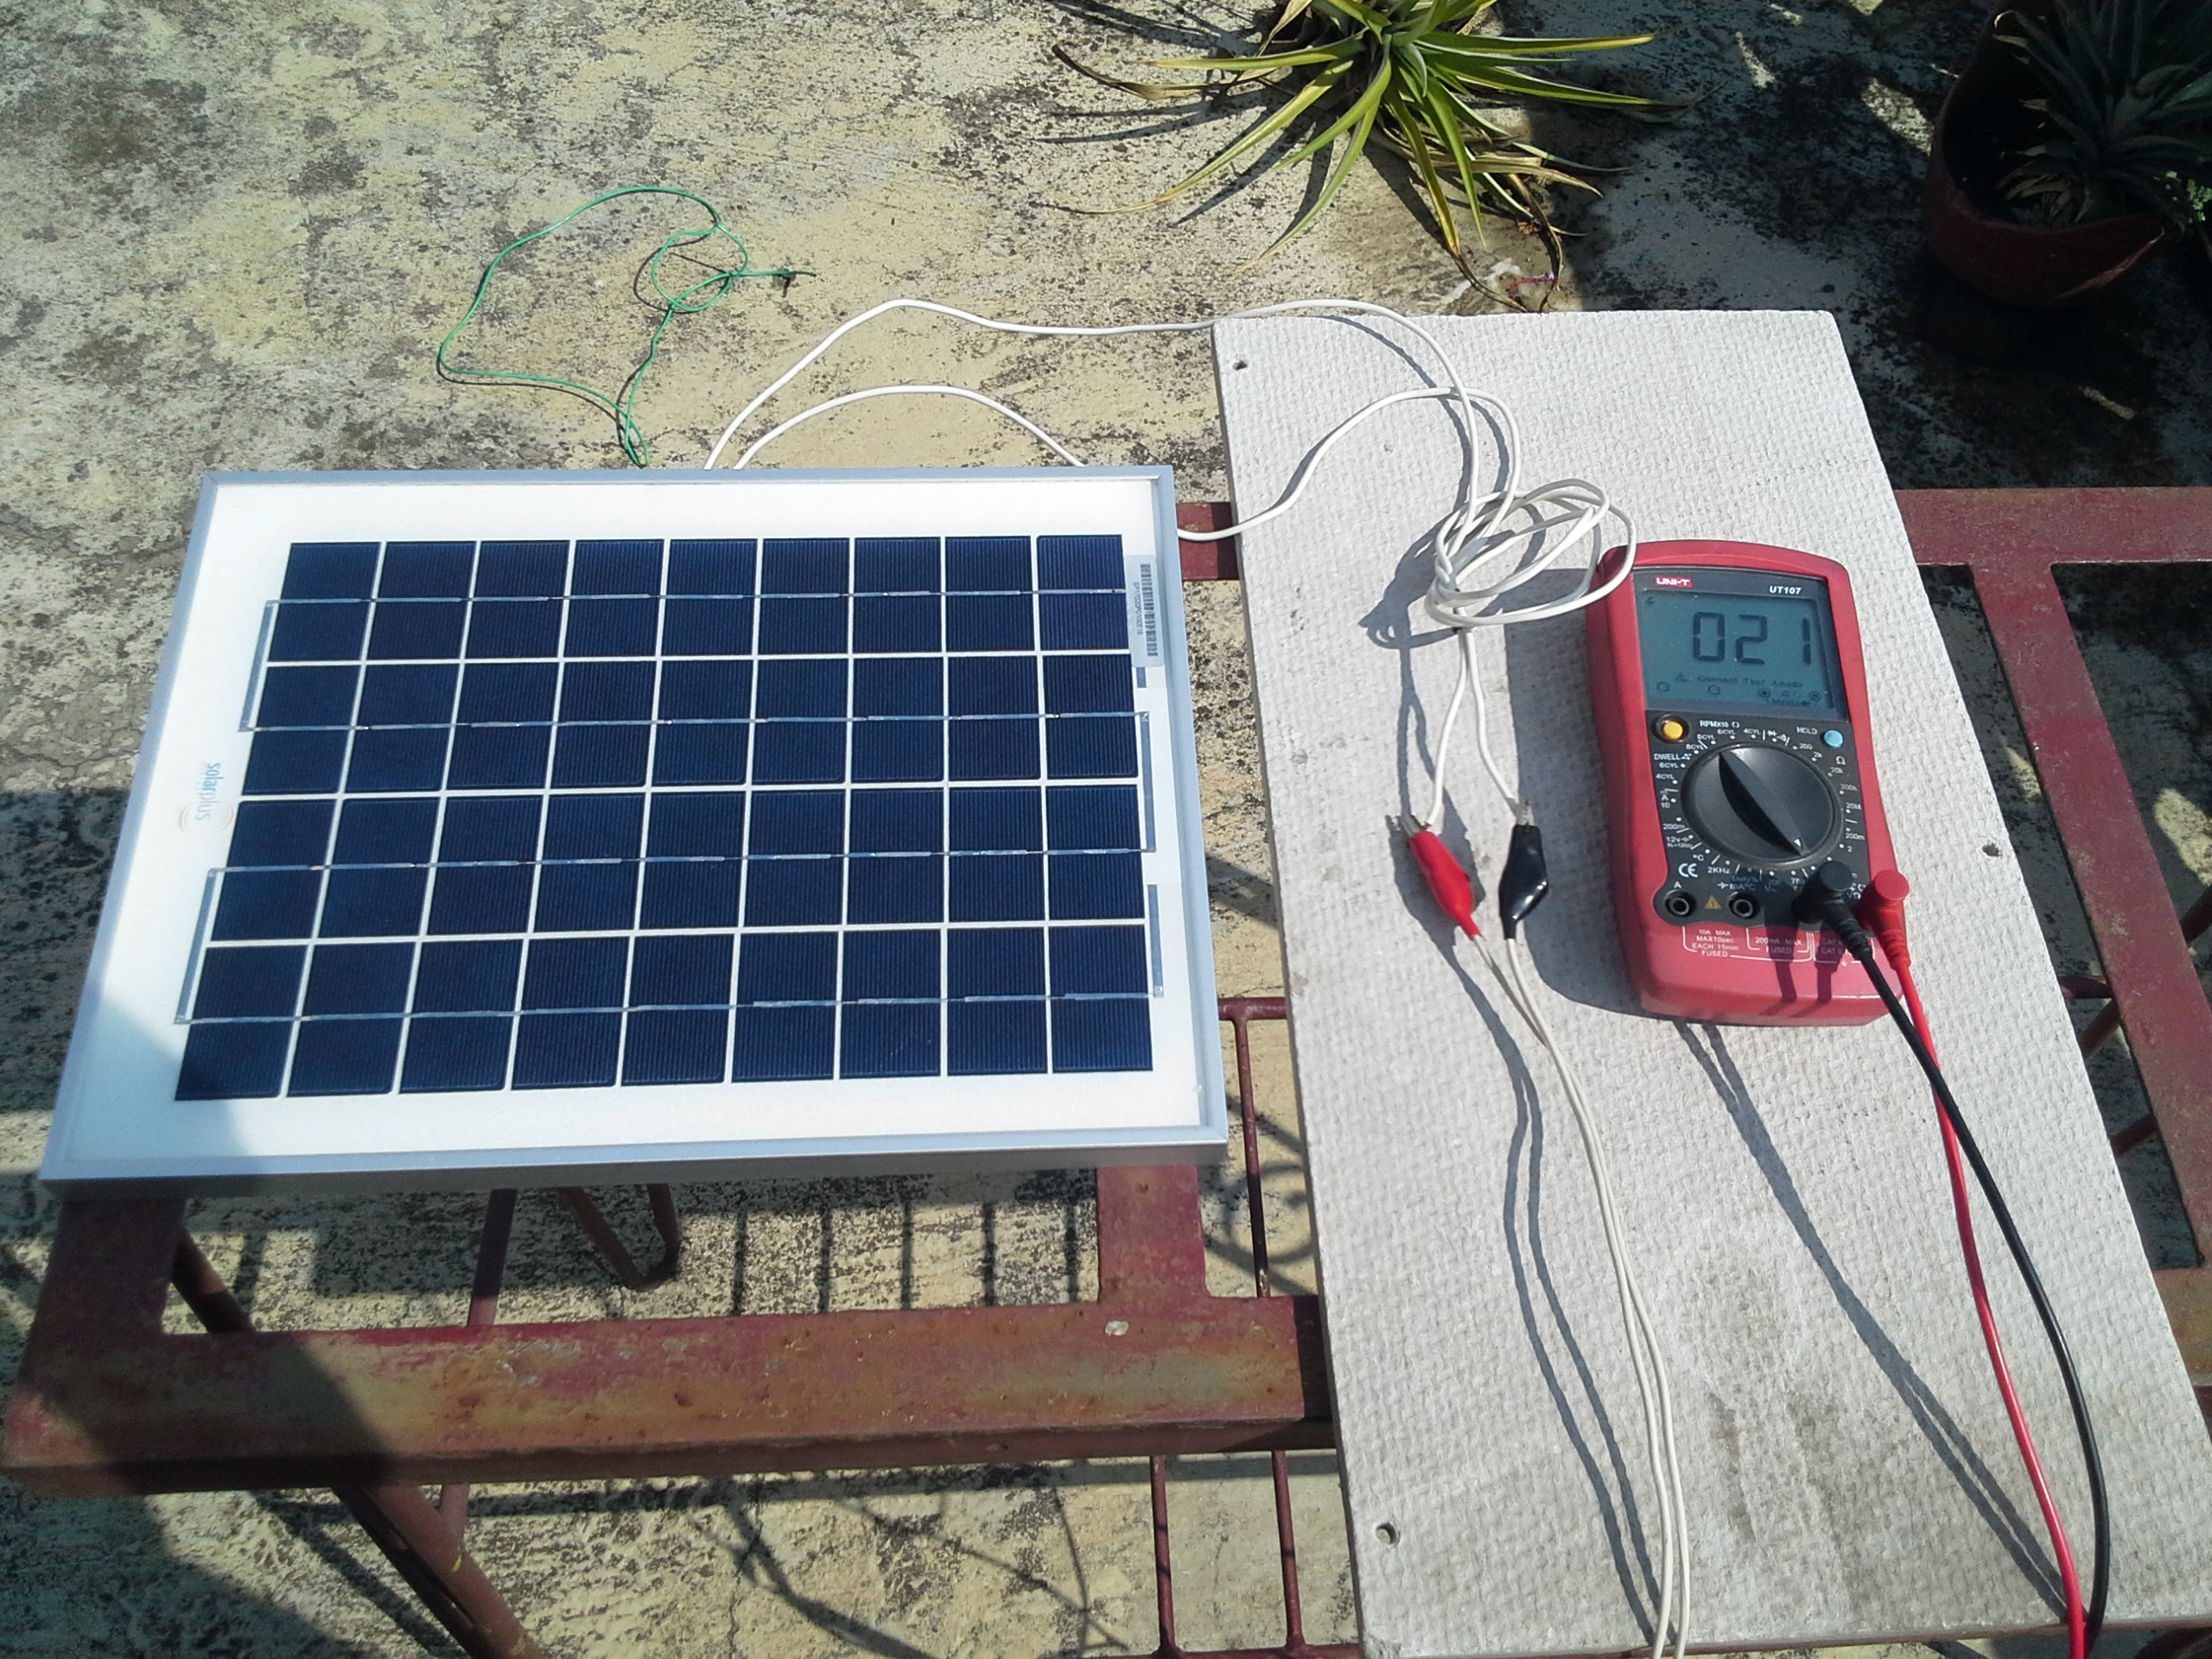 Review Solar Panel 10w With Arduino And Node Red Pdacontrol